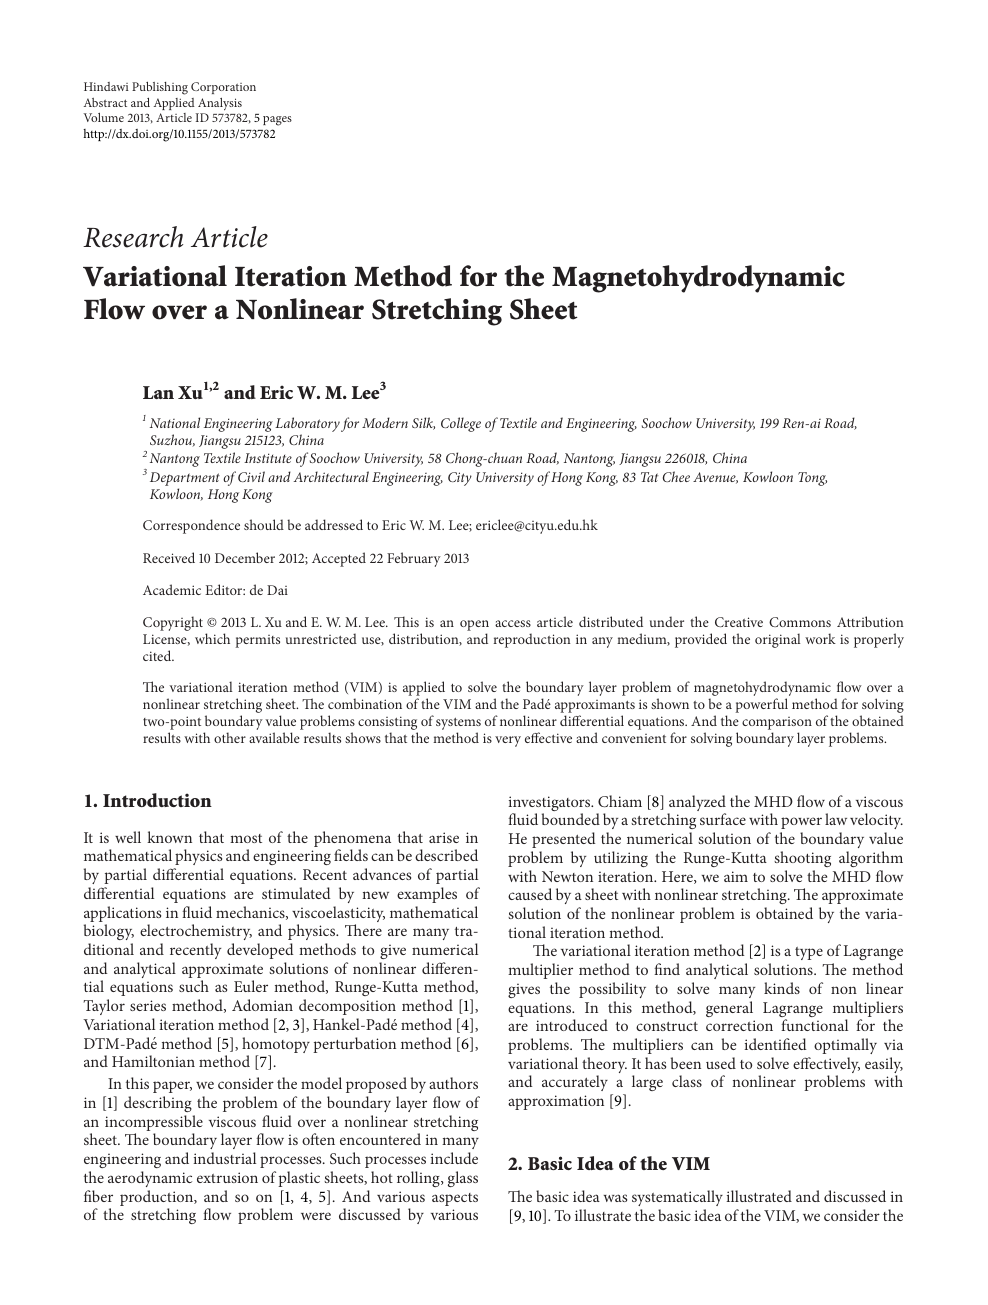 Variational Iteration Method for the Magnetohydrodynamic ...